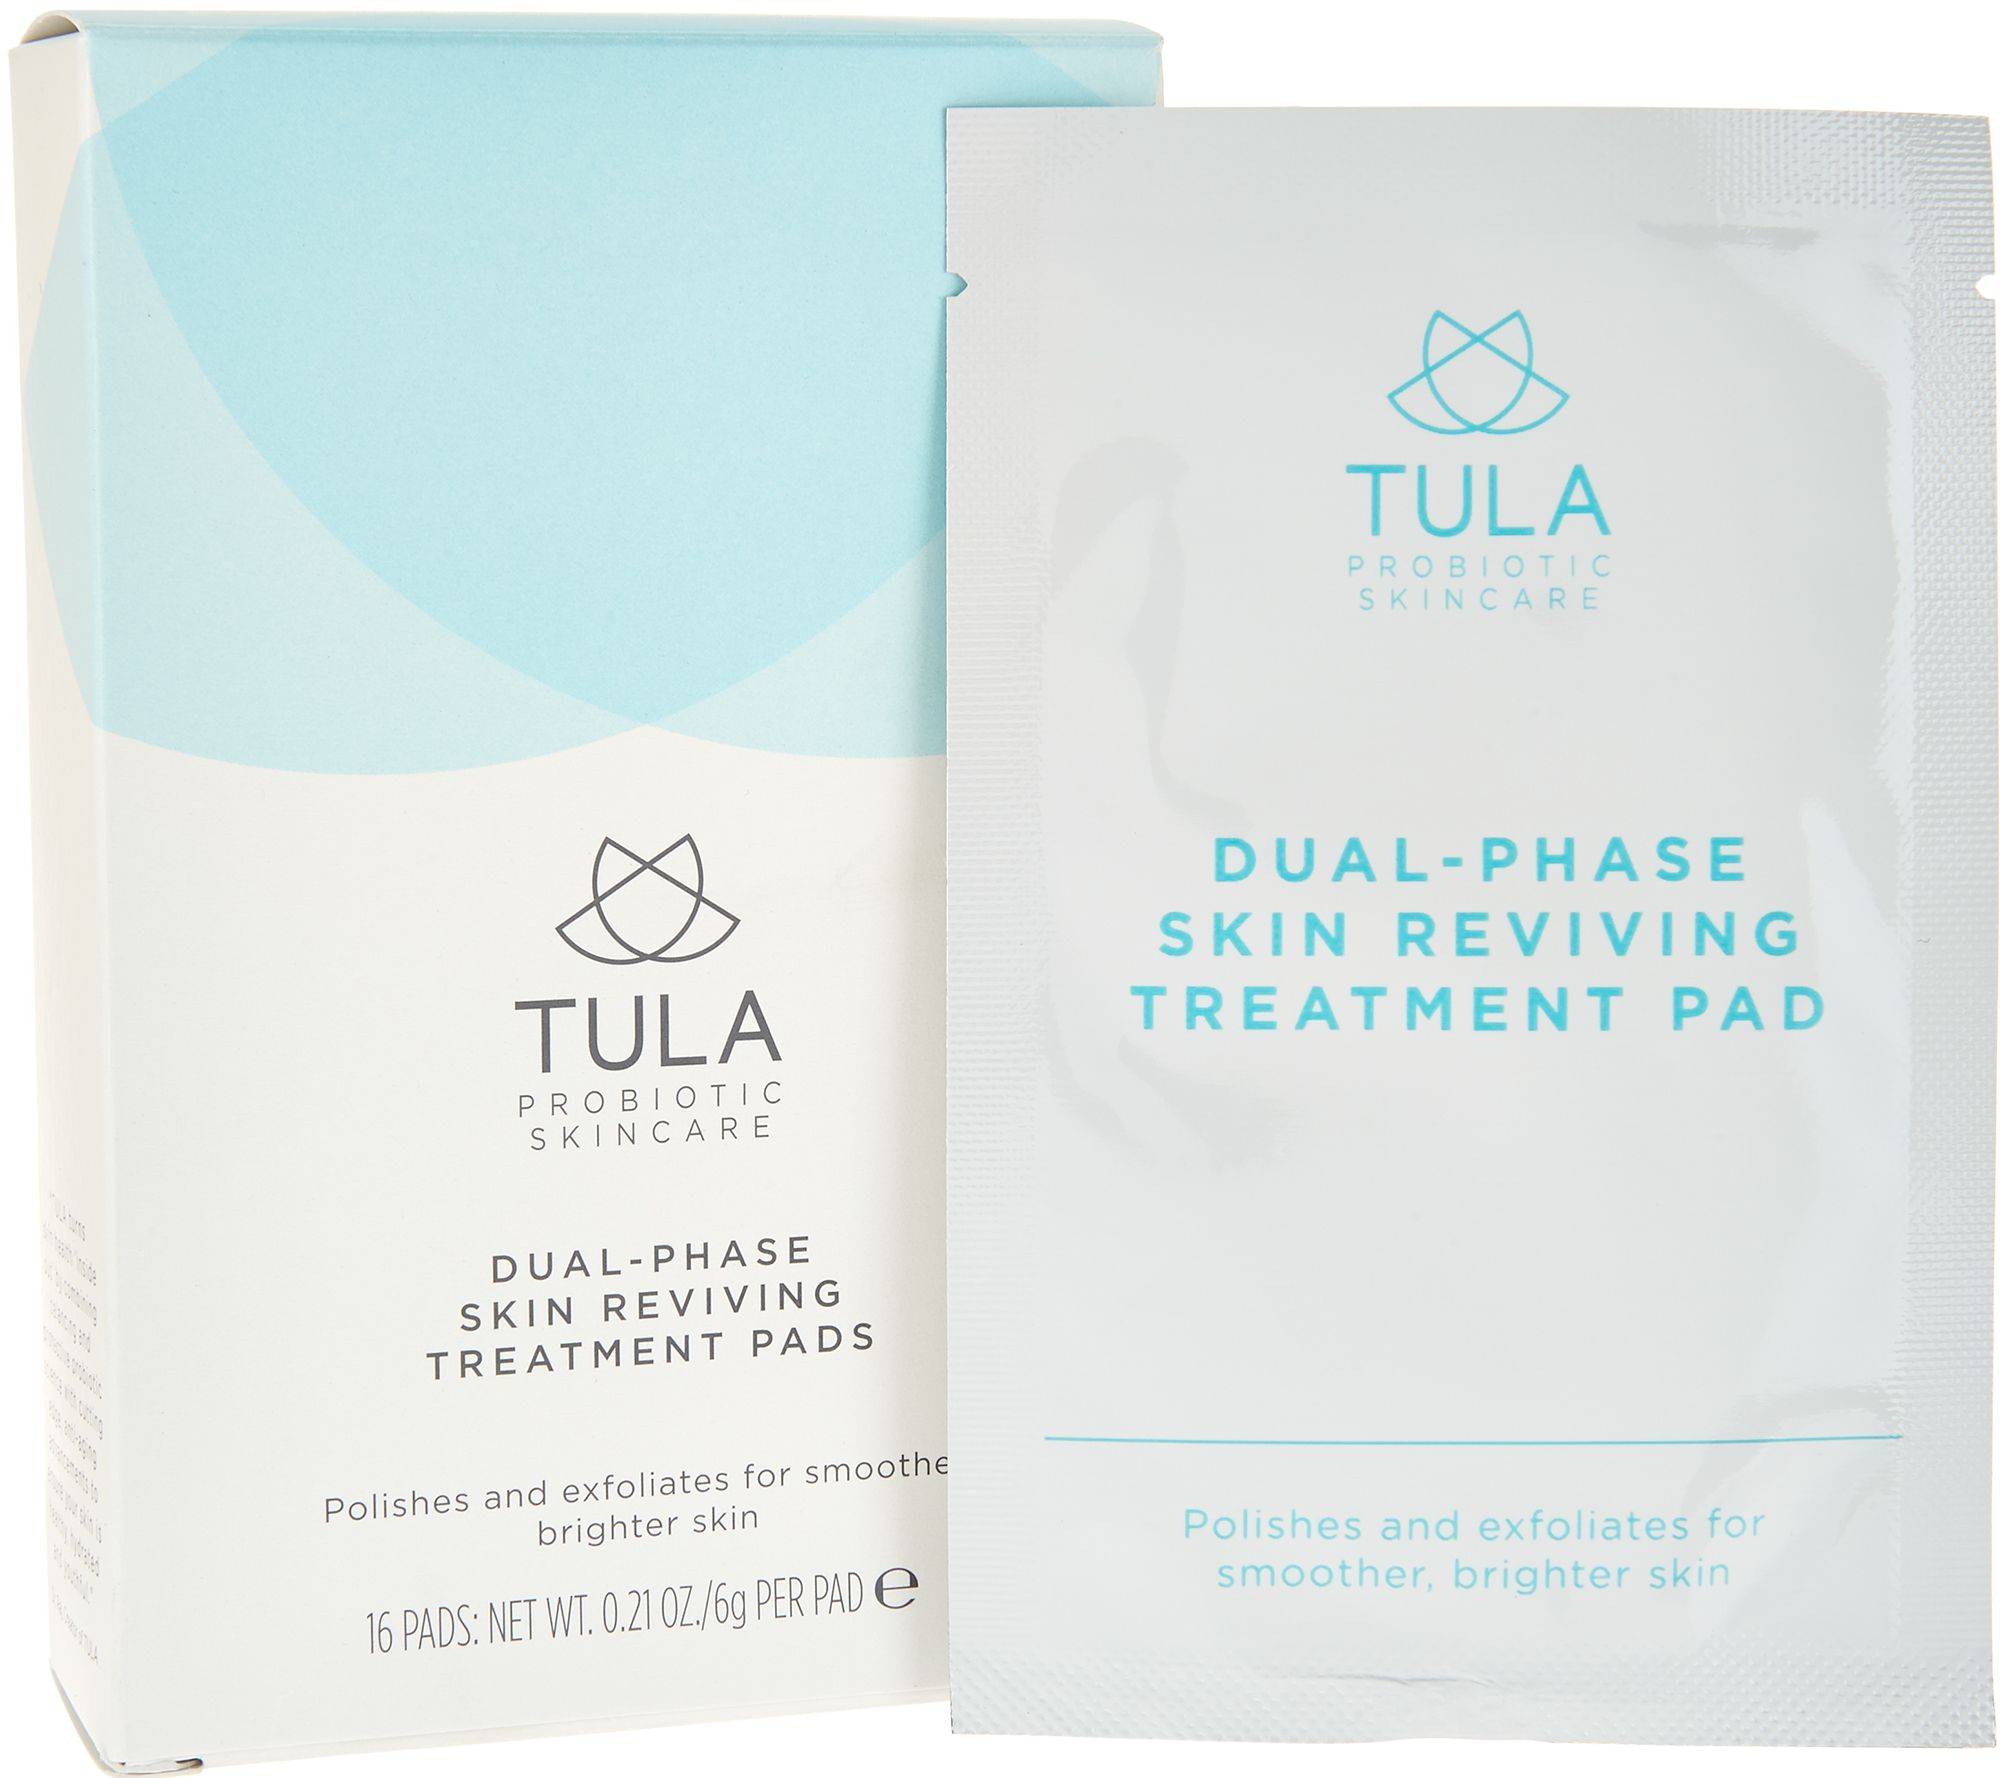 New customer qvc promo code - Tula By Dr Raj Dual Phase Skin Reviving Treatment Pads Auto Delivery Customer Top Rated